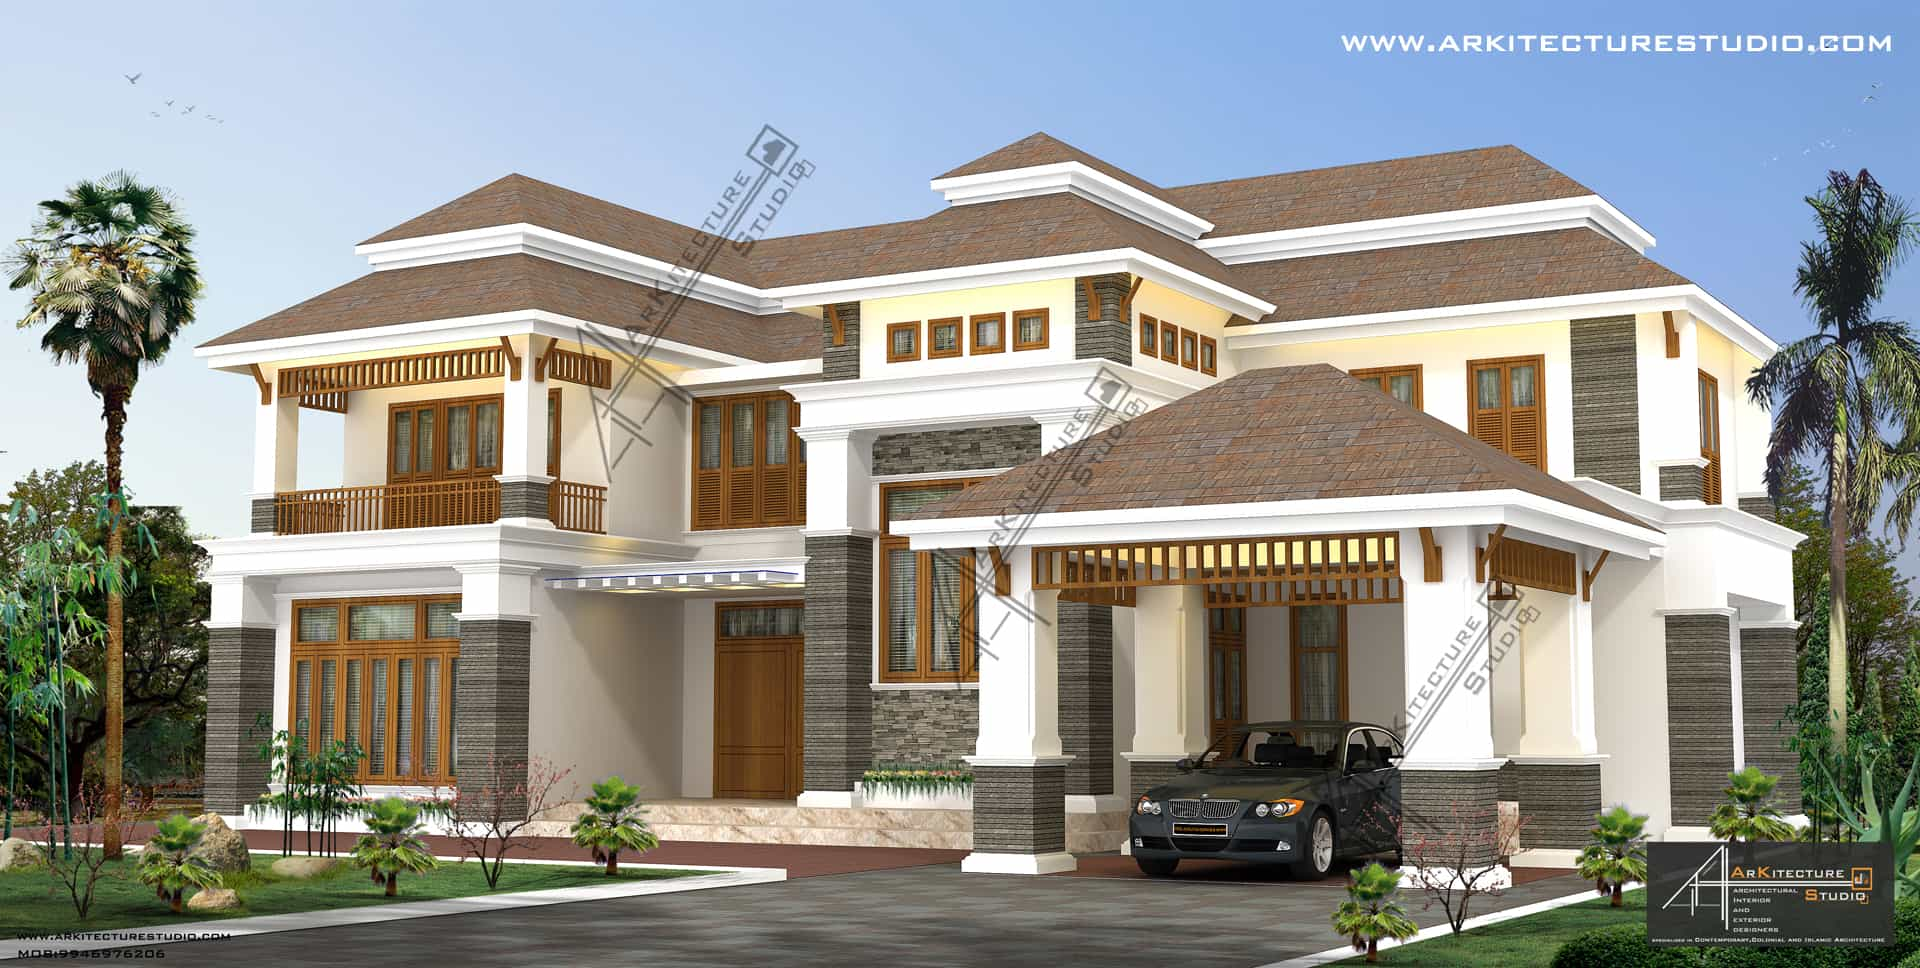 Colonial style house designs in kerala at 3500 sqft 5000 for 3000 sq ft house plans kerala